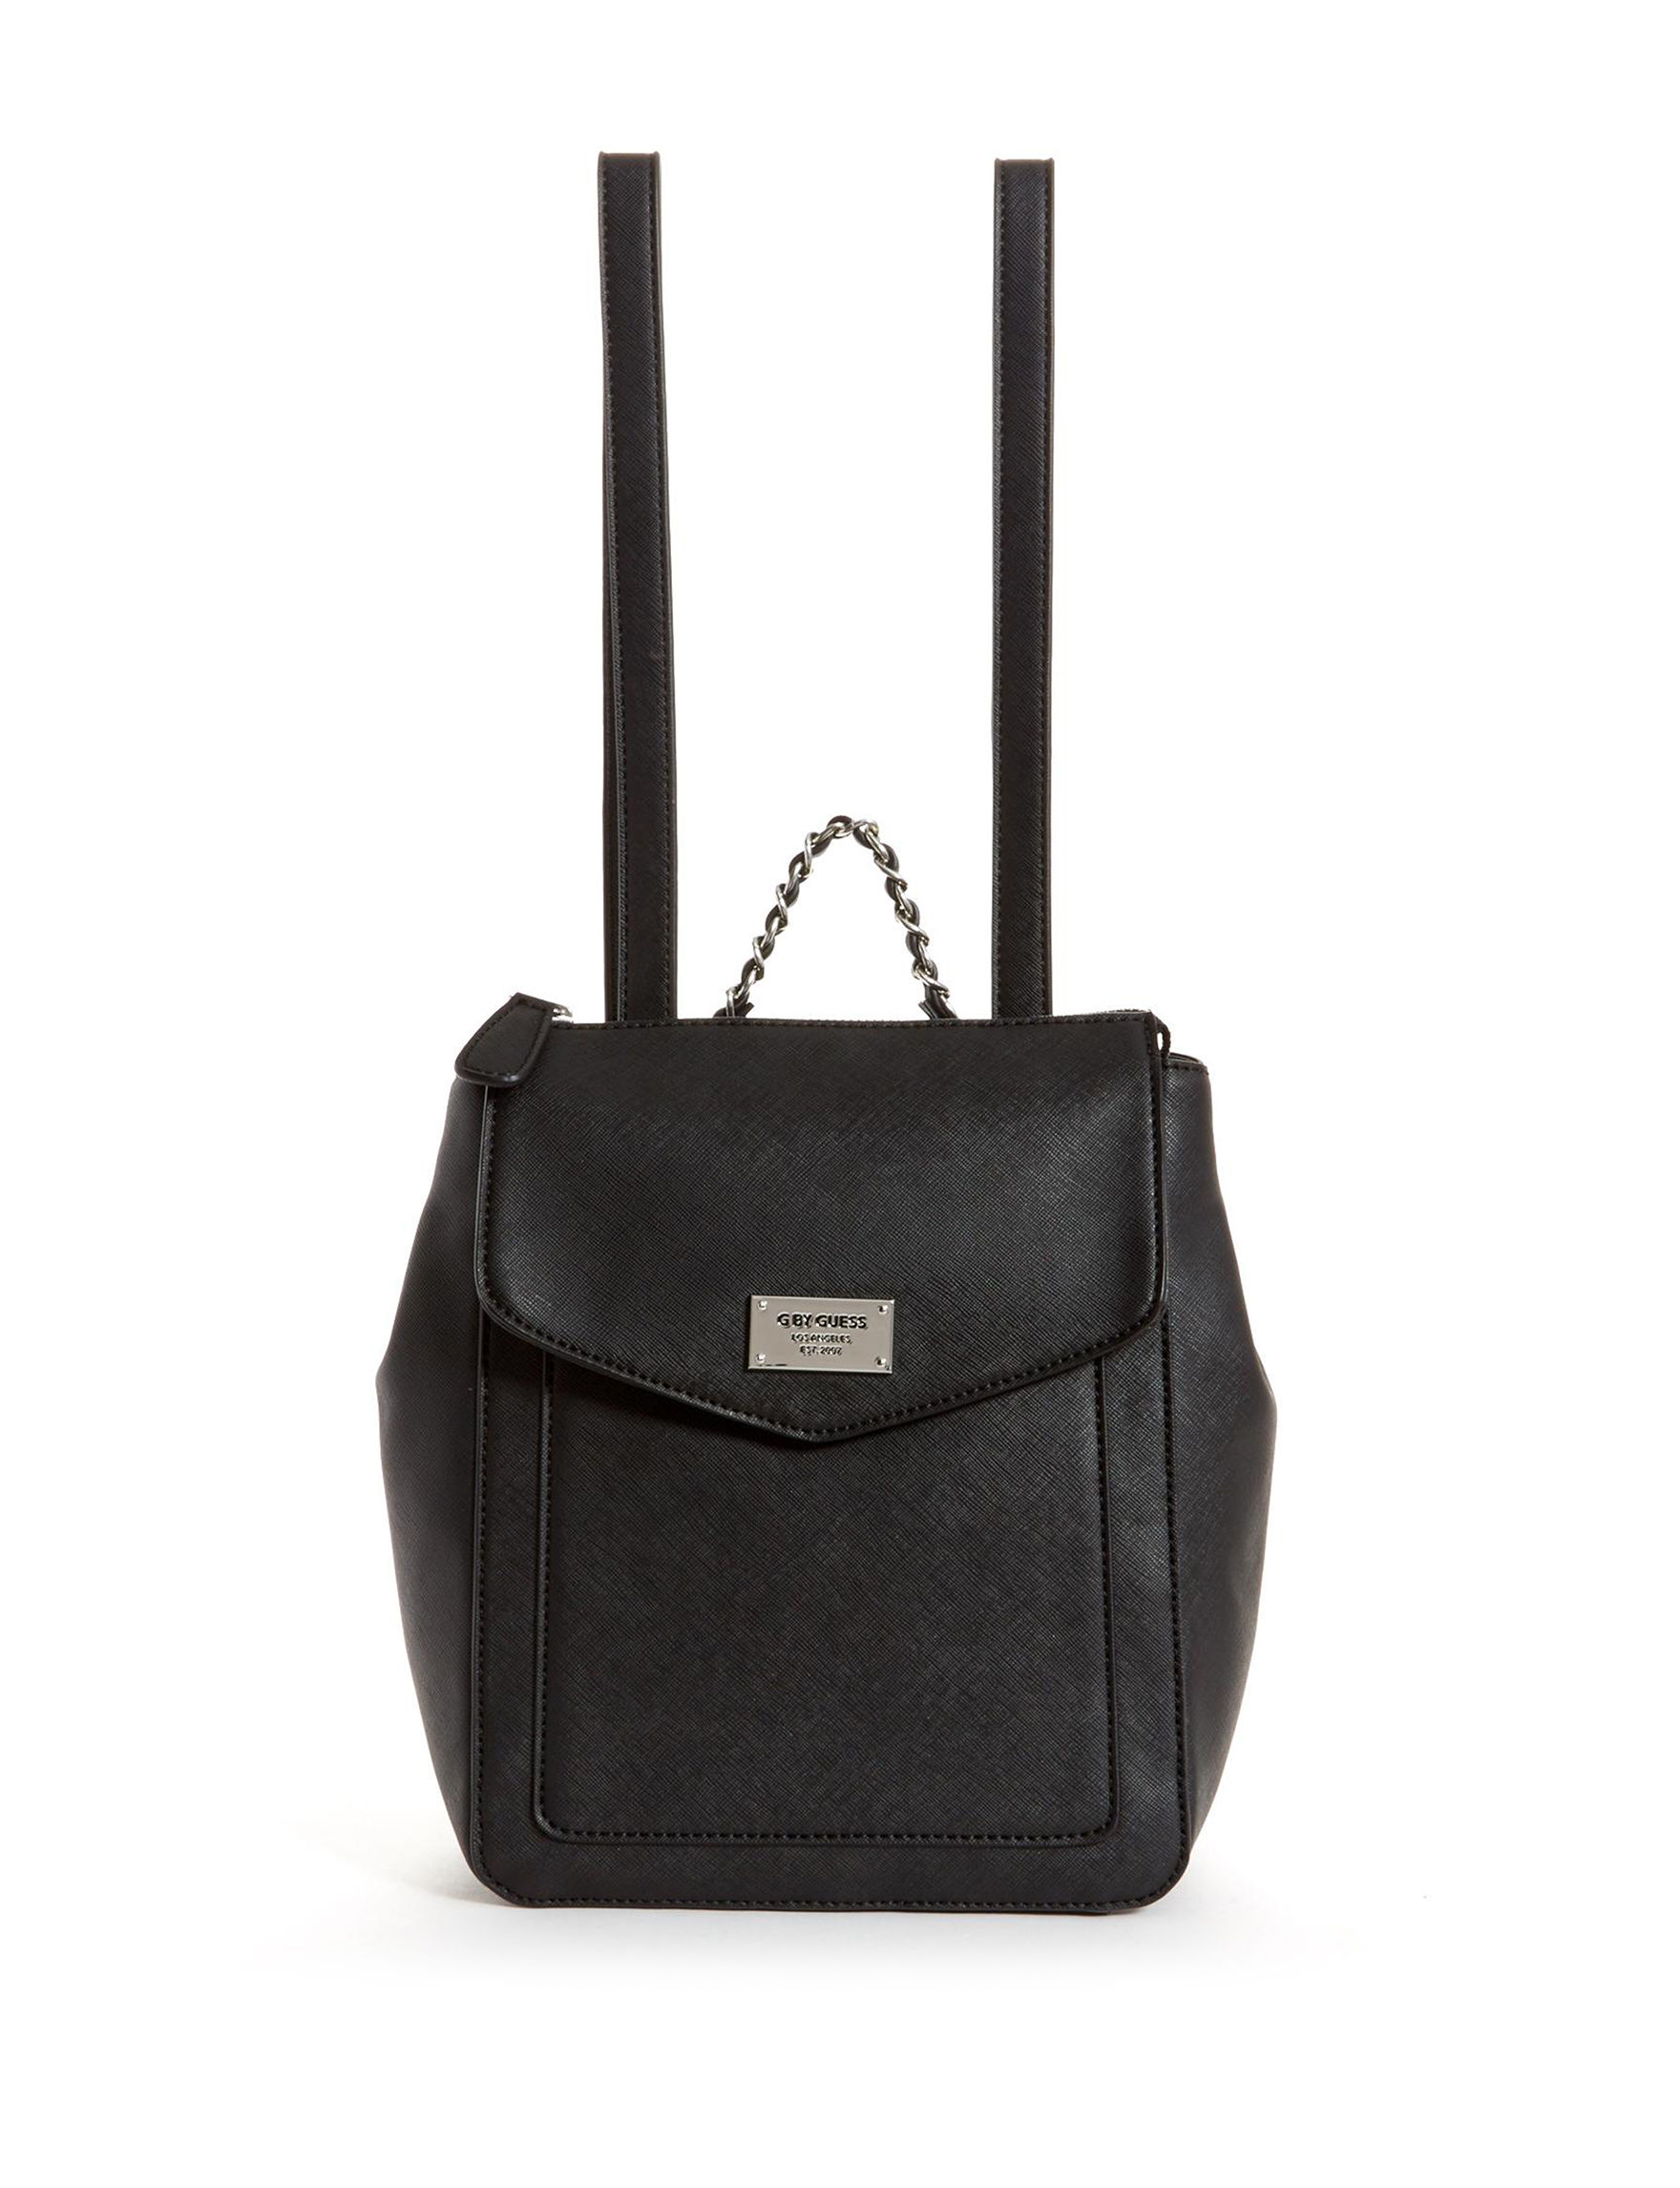 G by Guess Black Bookbags & Backpacks